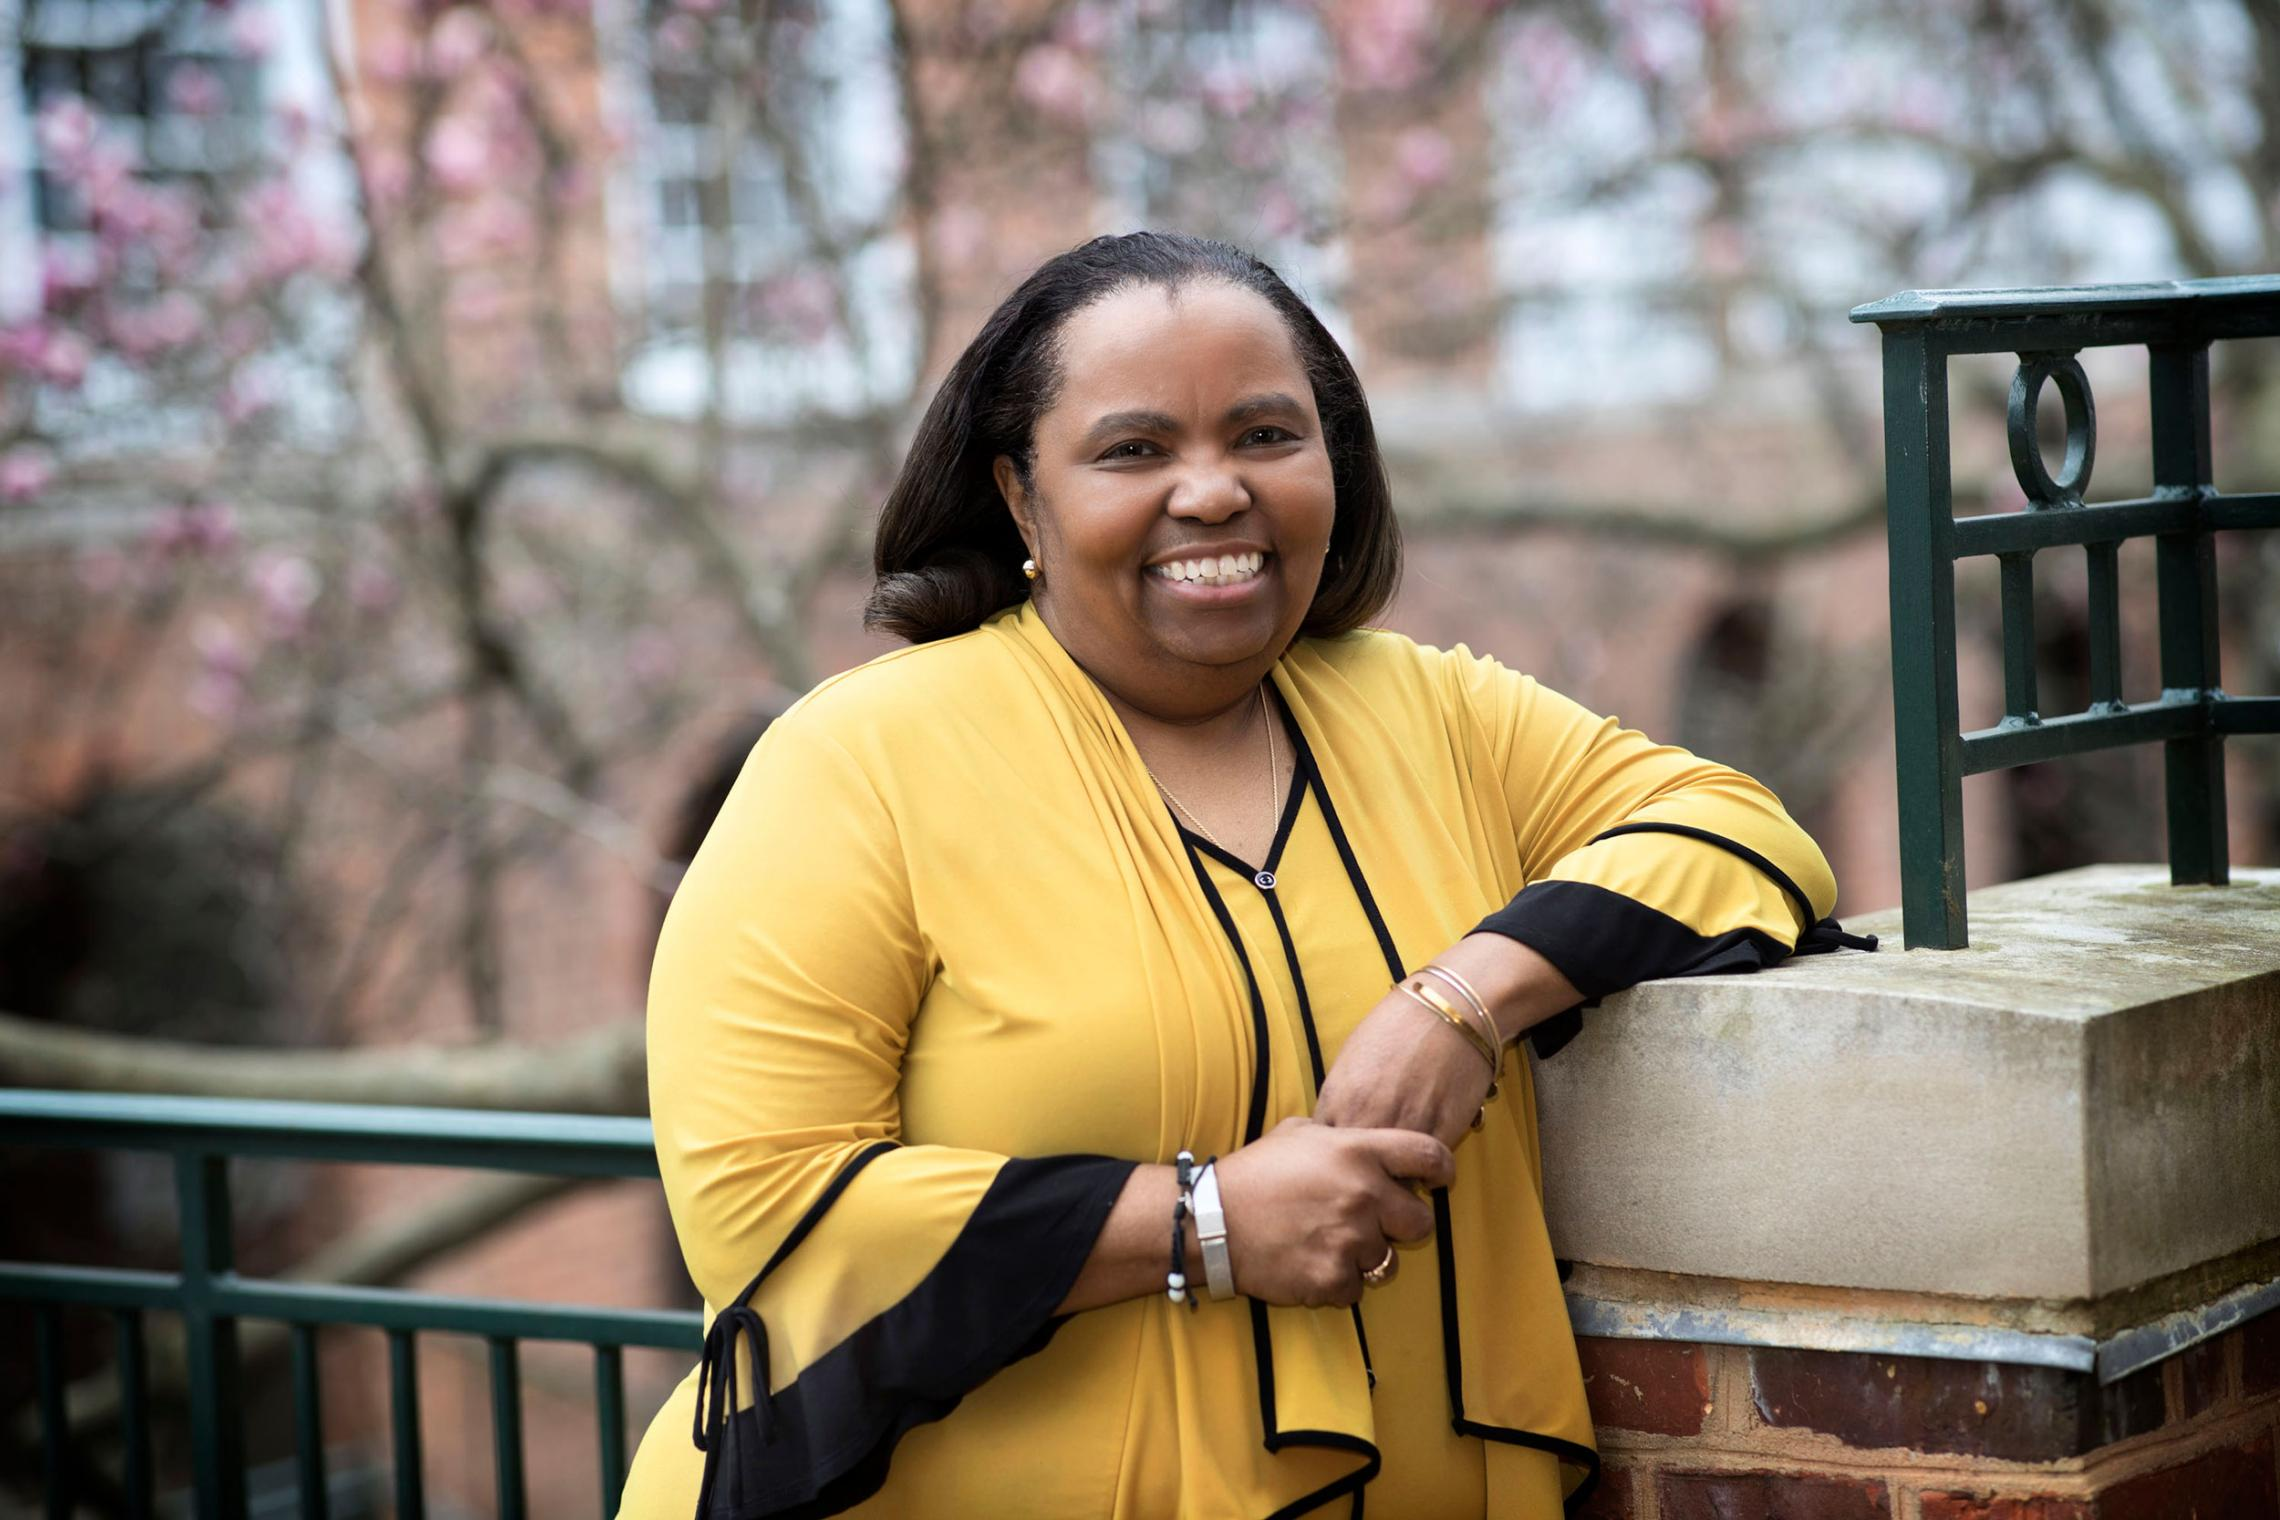 Valerie Gregory, associate dean of undergraduate admission and director of outreach, has traveled thousands of miles to recruit underrepresented students to UVA.